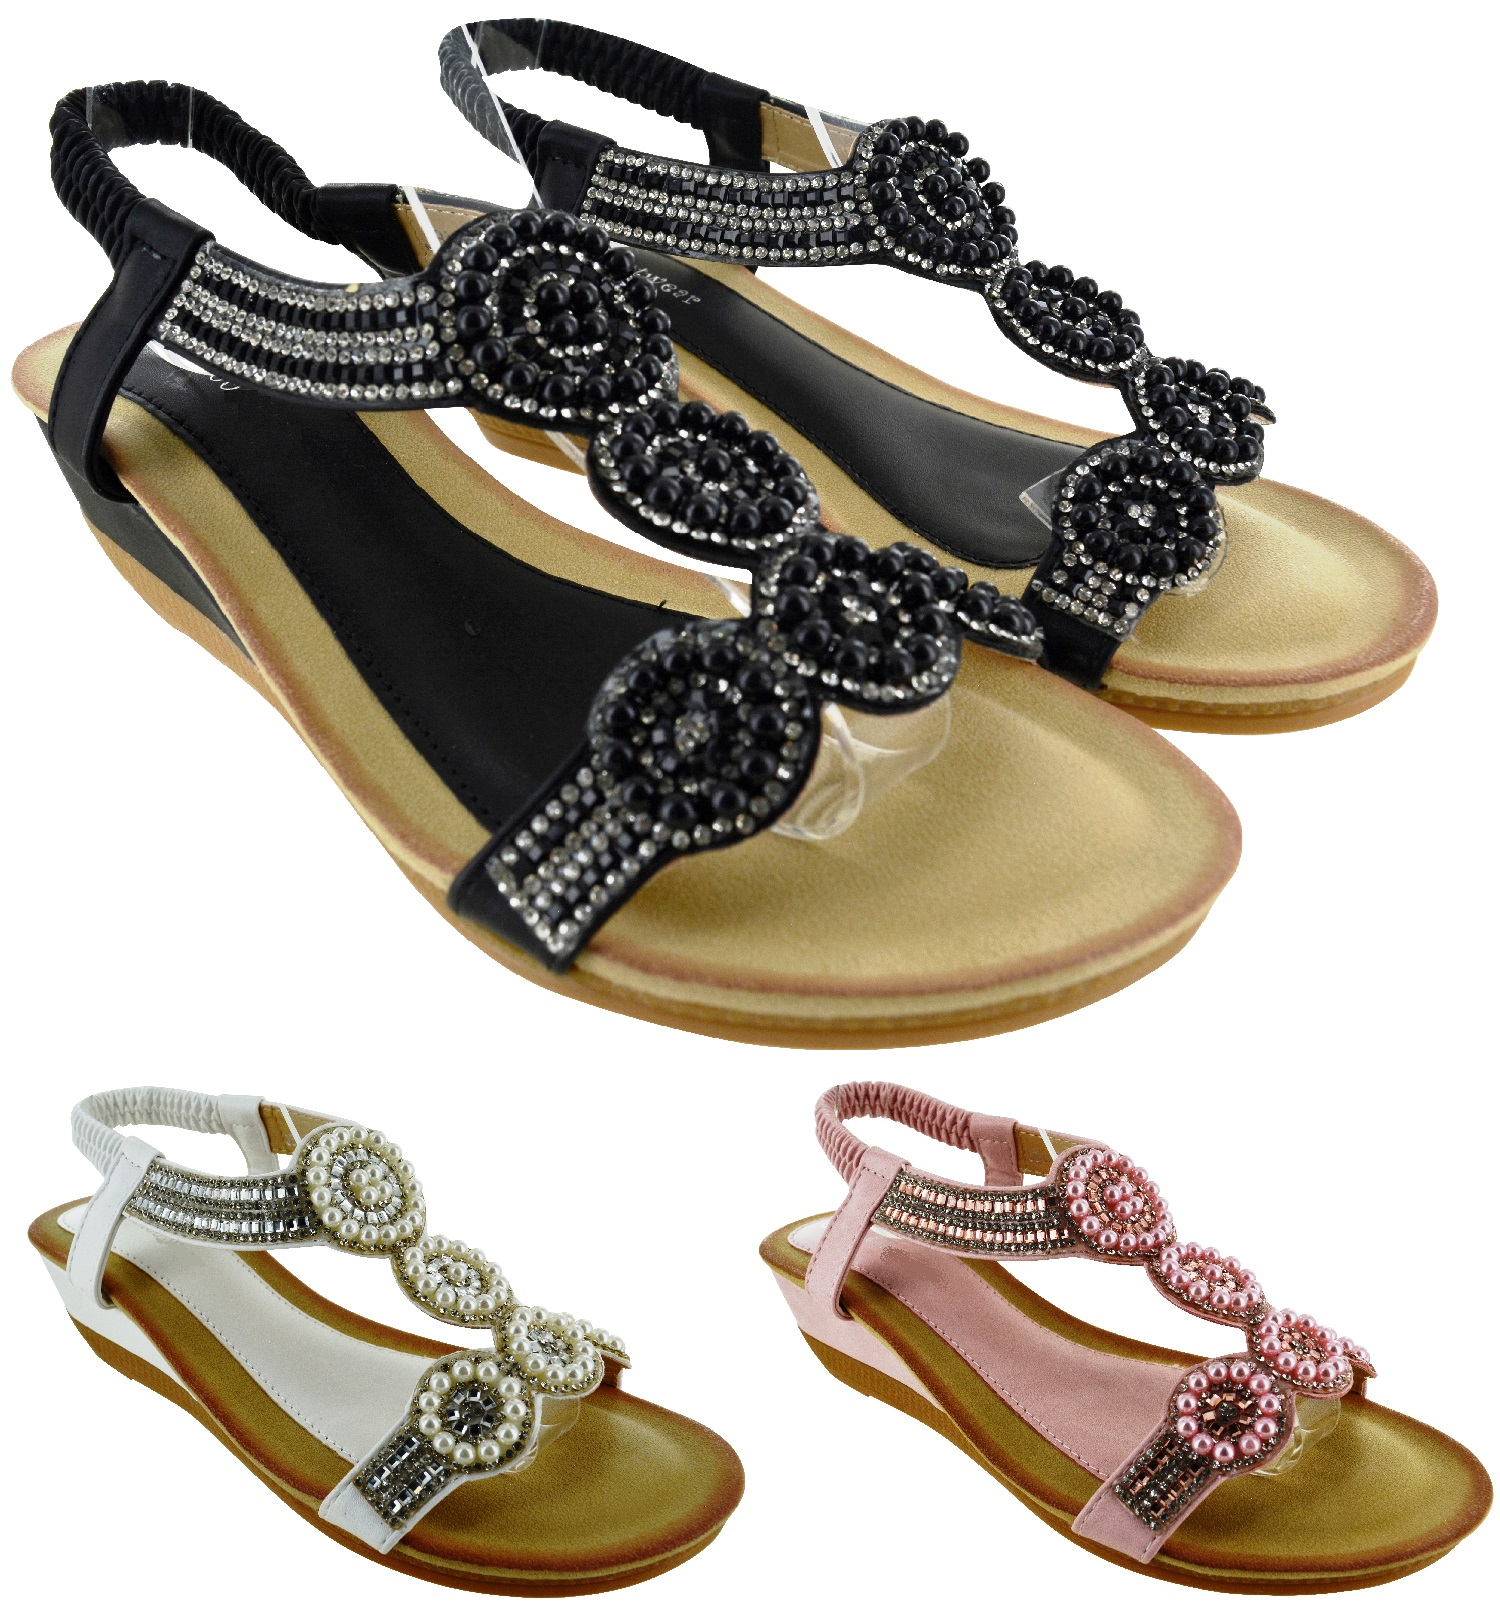 c43153aa5dba LADIES SUMMER PARTY FLAT WEDGE HEEL FLAT SANDALS WOMENS BEACH HOLIDAY SHOES  SIZE